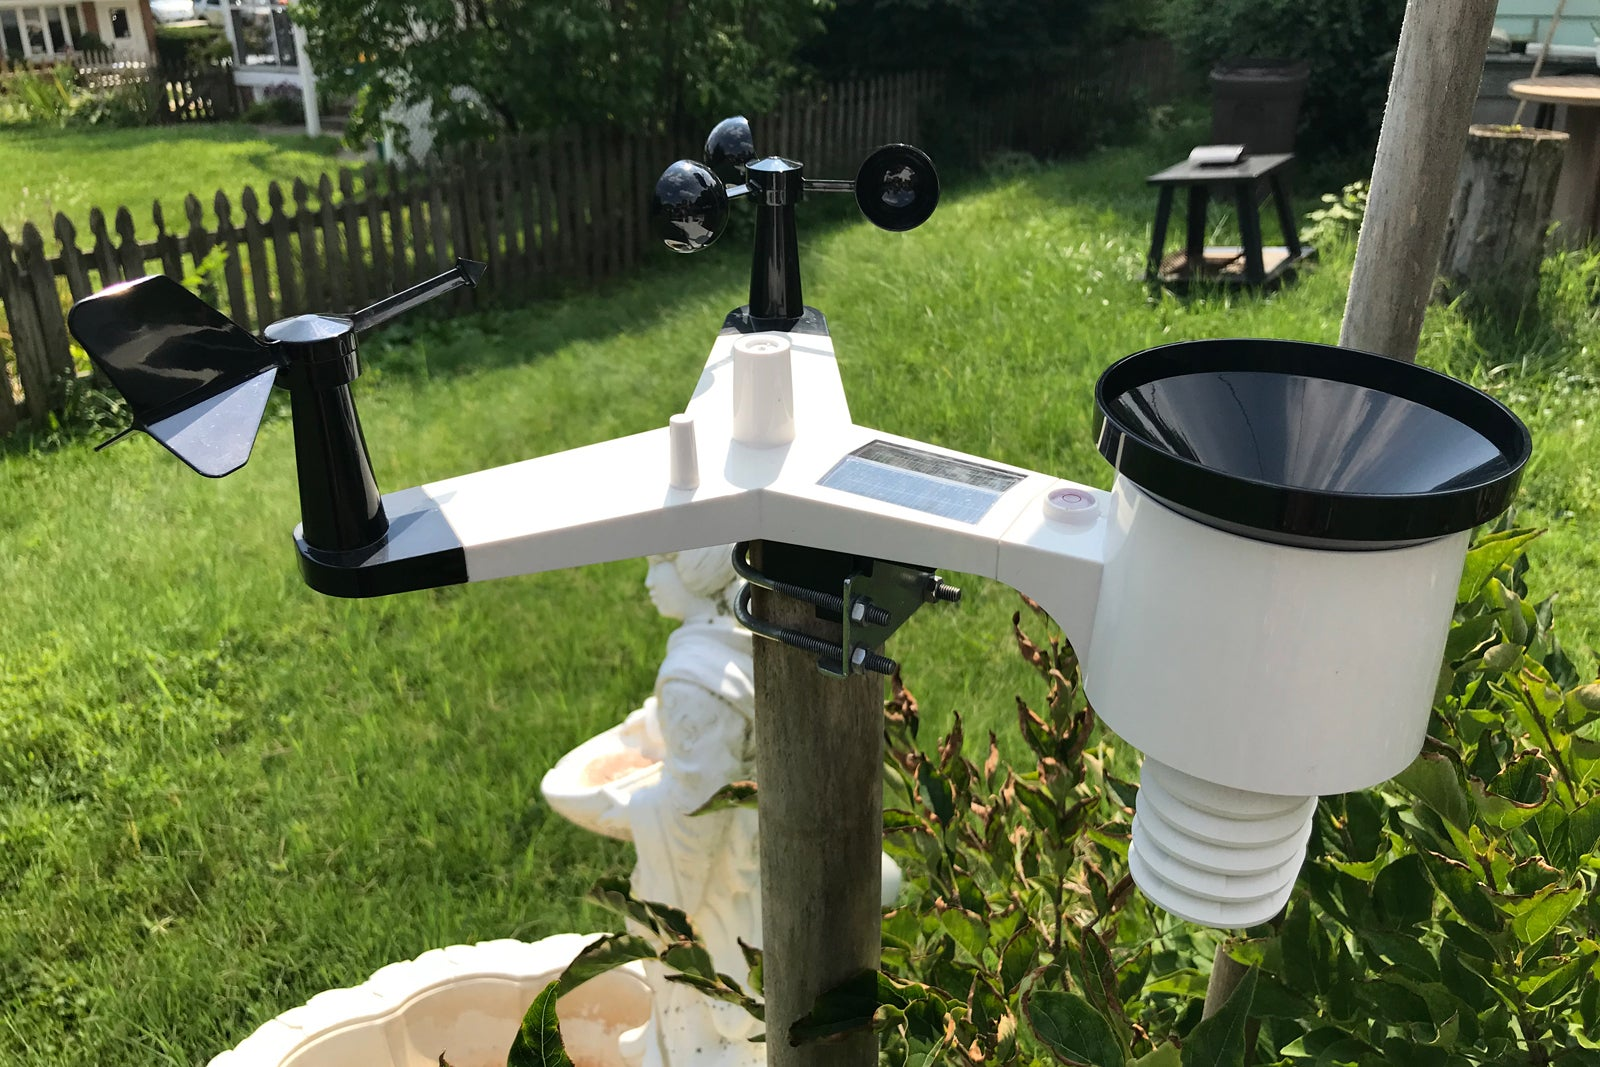 ambient weather ws 2902 osprey weather station review the best choice for smart home buffs. Black Bedroom Furniture Sets. Home Design Ideas